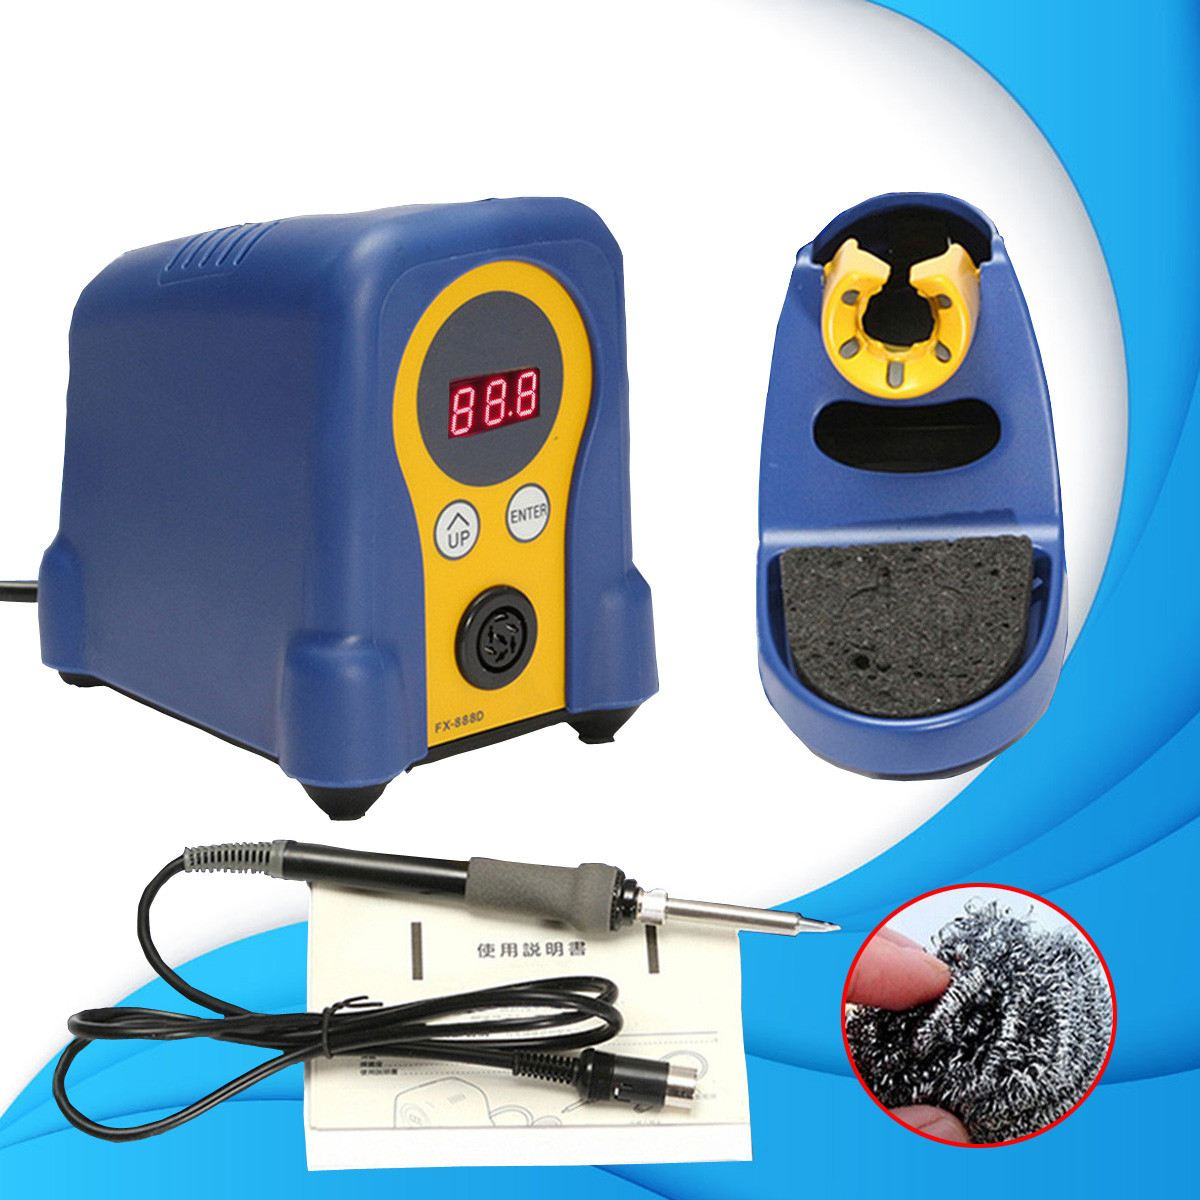 70W 220V Digital Display Soldering Station Iron With Stand Repair Tool  Adjustable Temperature Control Durable Quality70W 220V Digital Display Soldering Station Iron With Stand Repair Tool  Adjustable Temperature Control Durable Quality